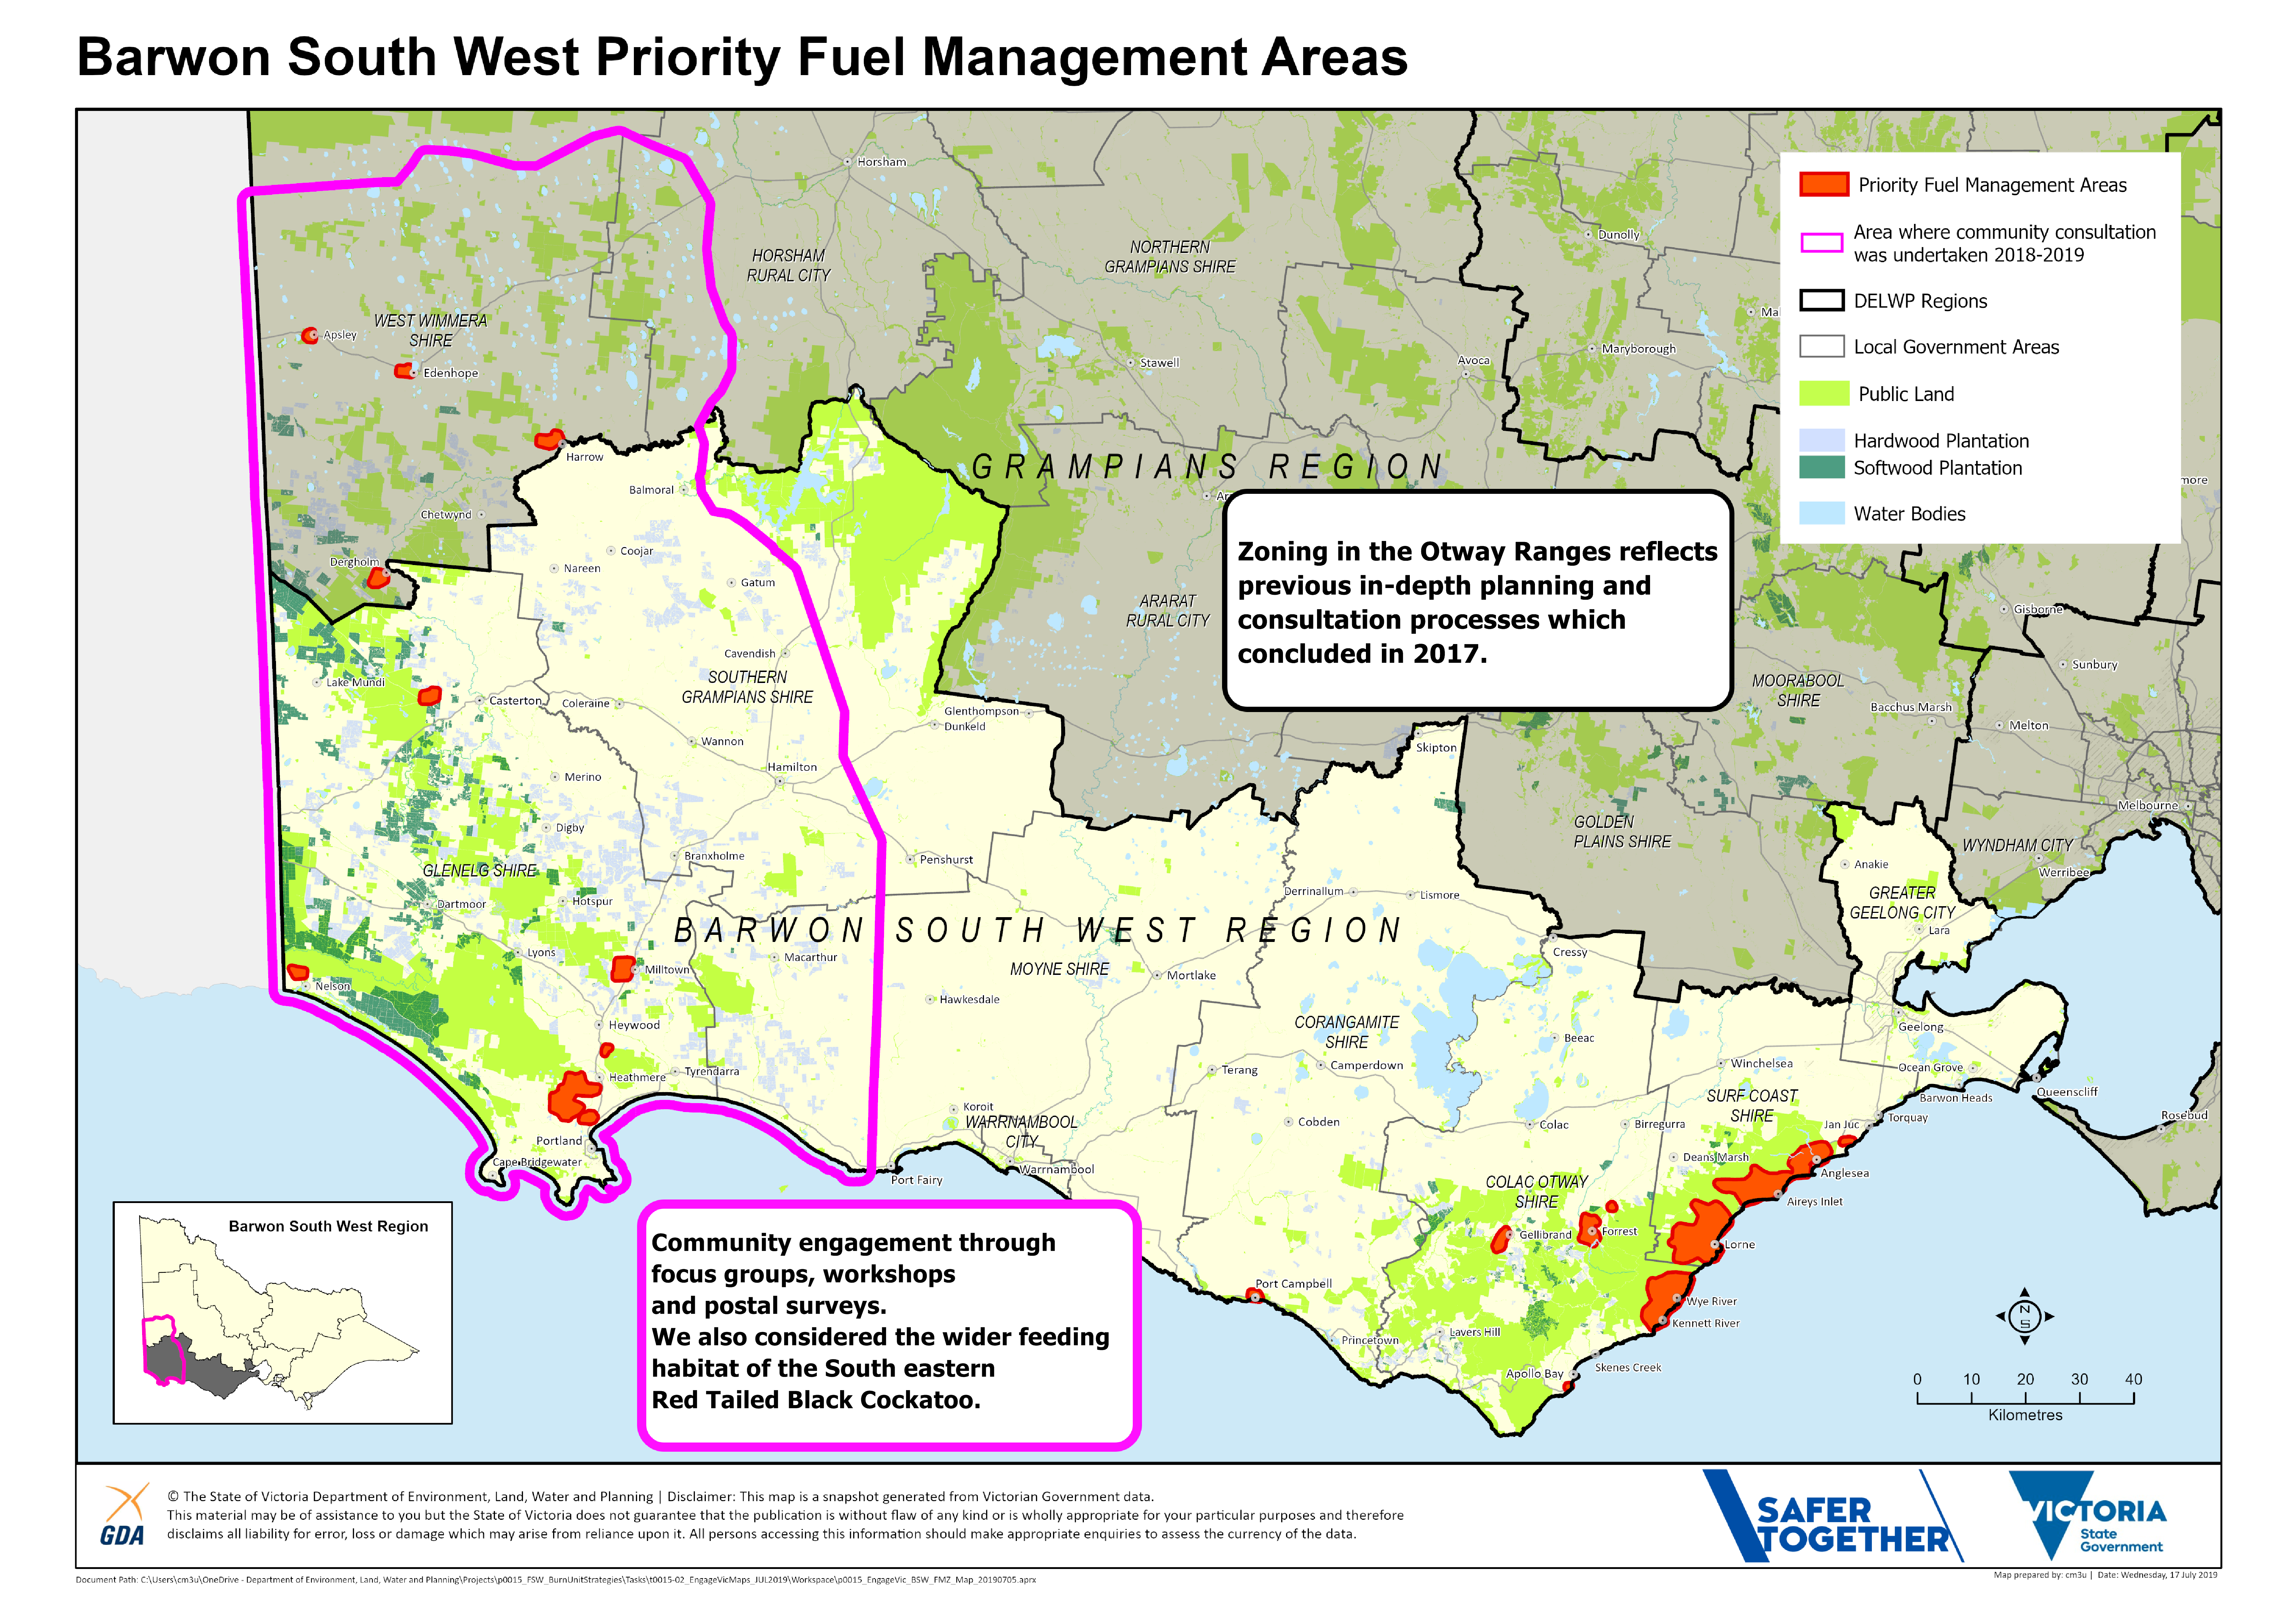 A map of the Priority Fuel Management Areas in Barwon South West region